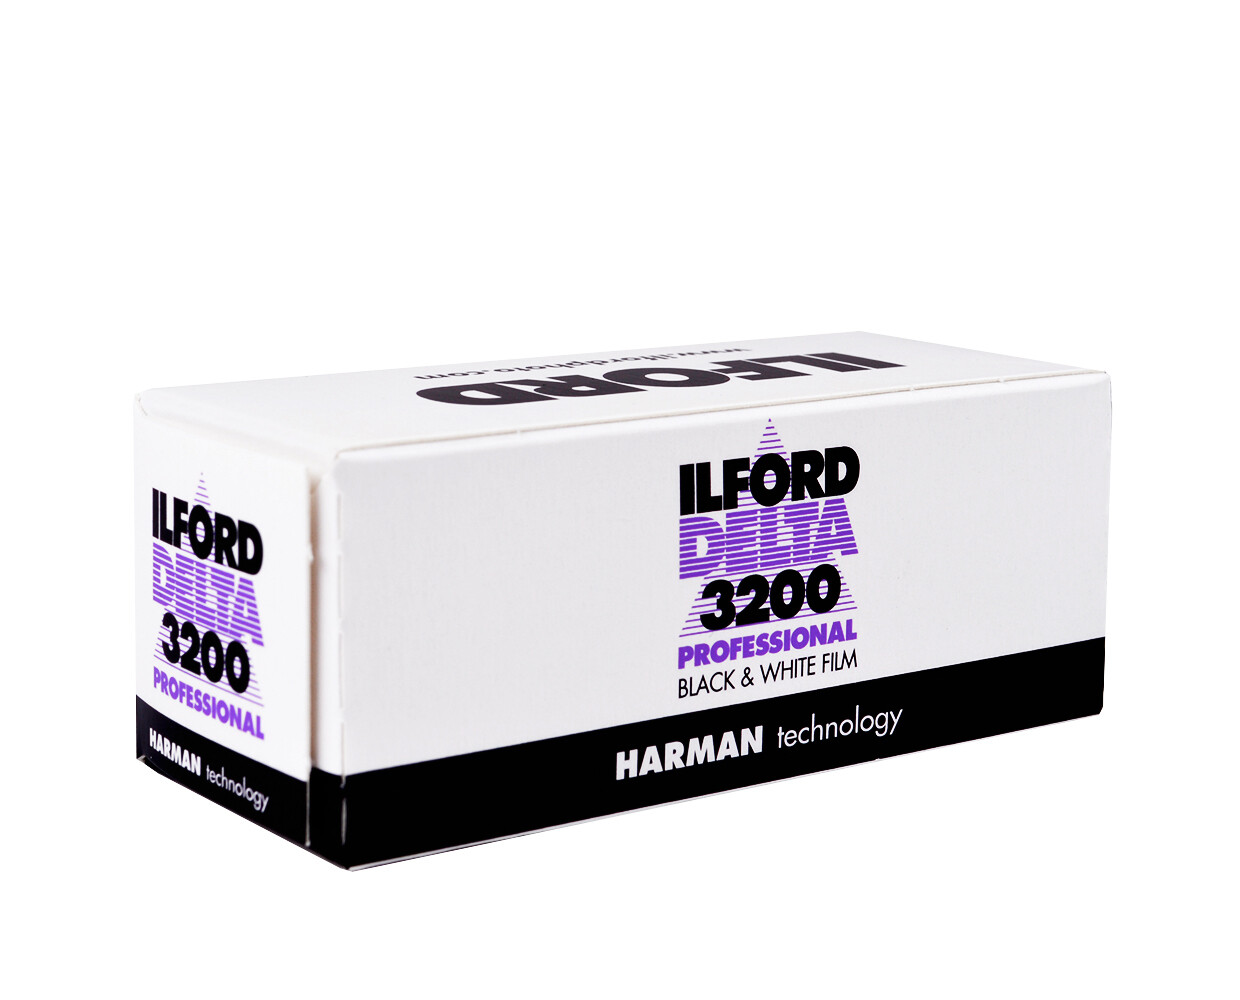 lford Delta 3200 Professional Black and White Negative Film (120 Roll Film) expired 02/2022